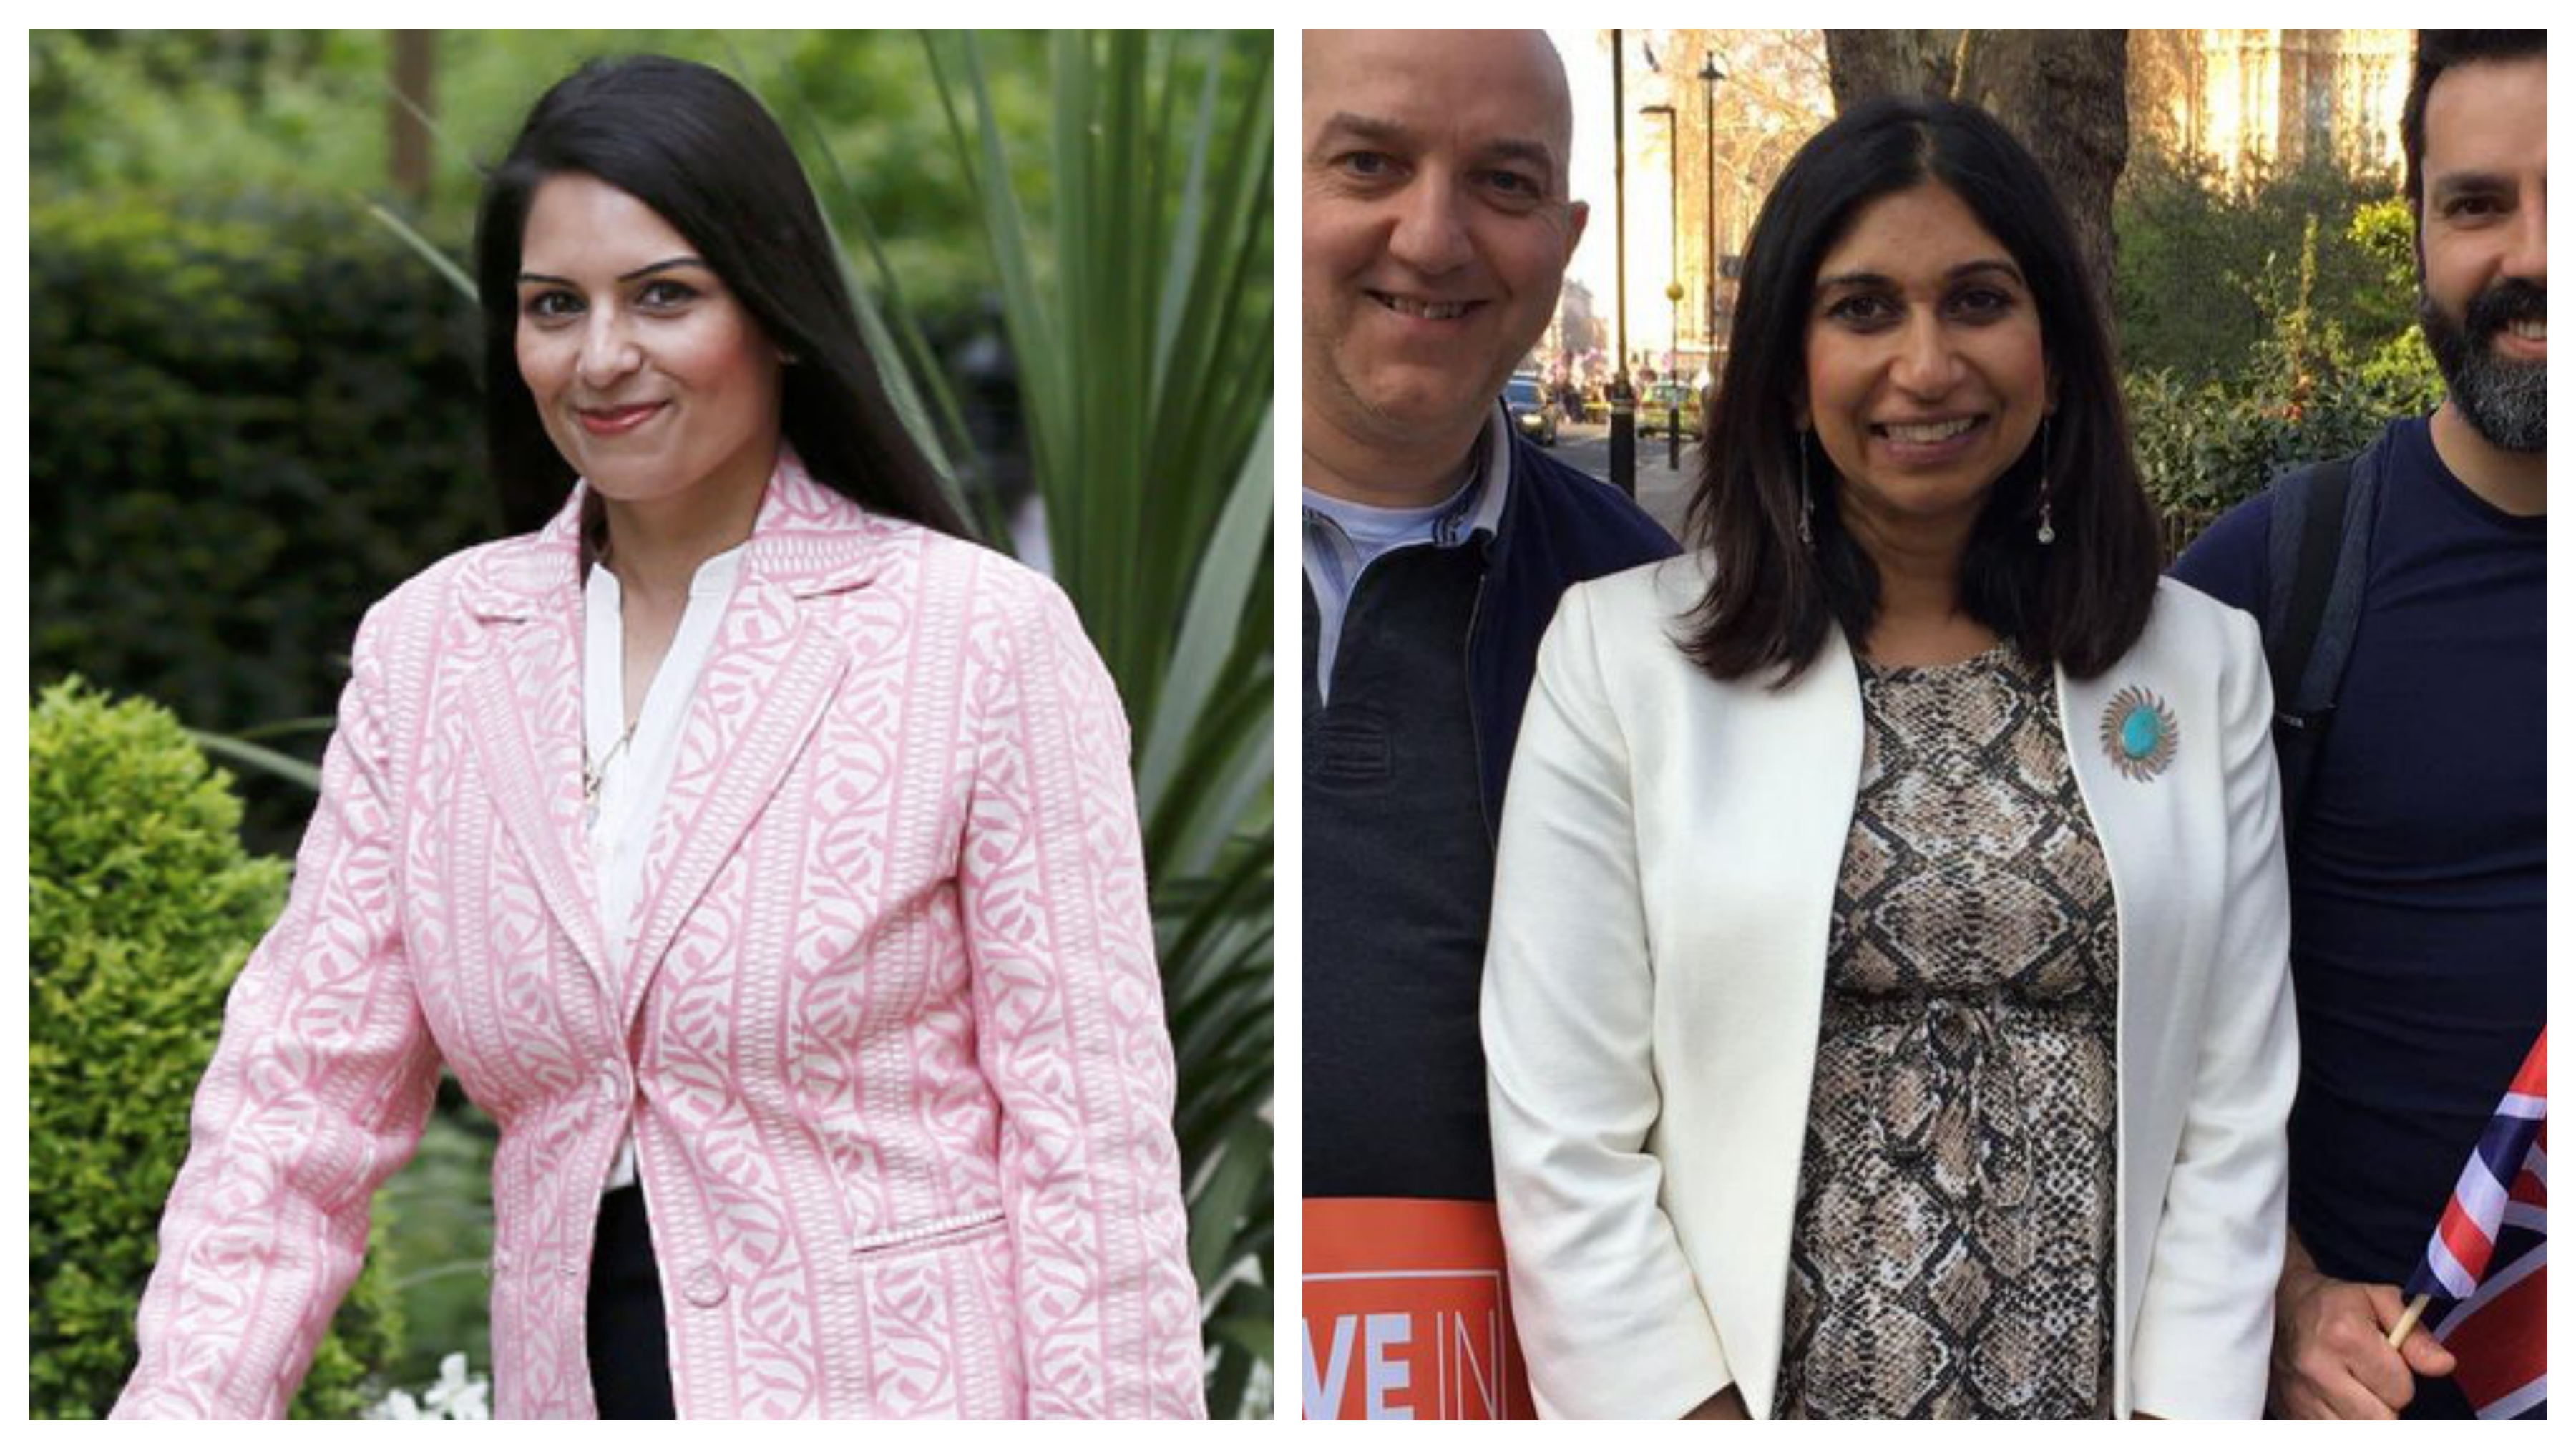 Indian-origin MPs Priti Patel (left) and Suella Braverman are among a steadfast group of hard-Brexiteer Conservatives holding out against the deal negotiated by the Theresa May government with the EU. Photo courtesy: Twitter